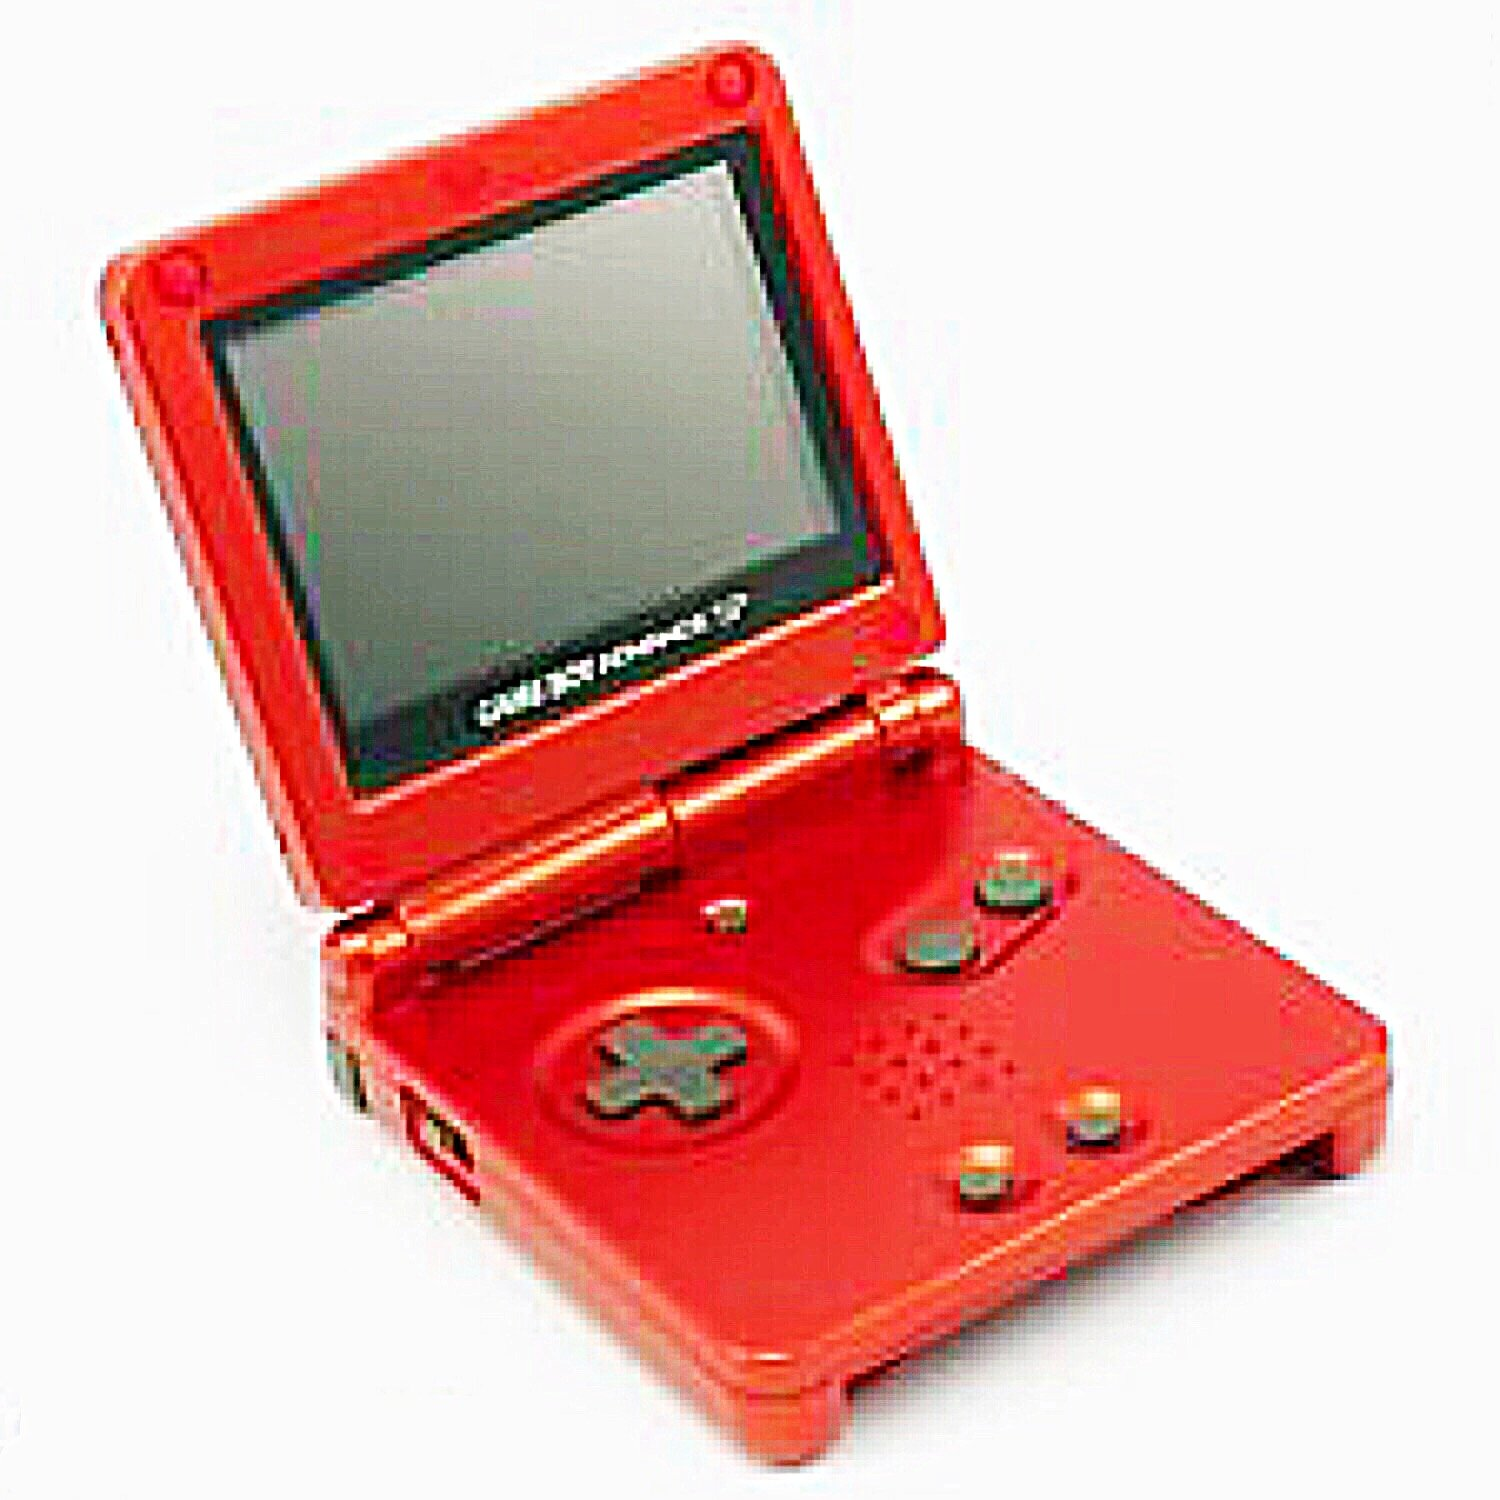 Amazon.com: Nintendo Game Boy Advance SP Console - Flame Red: Video Games